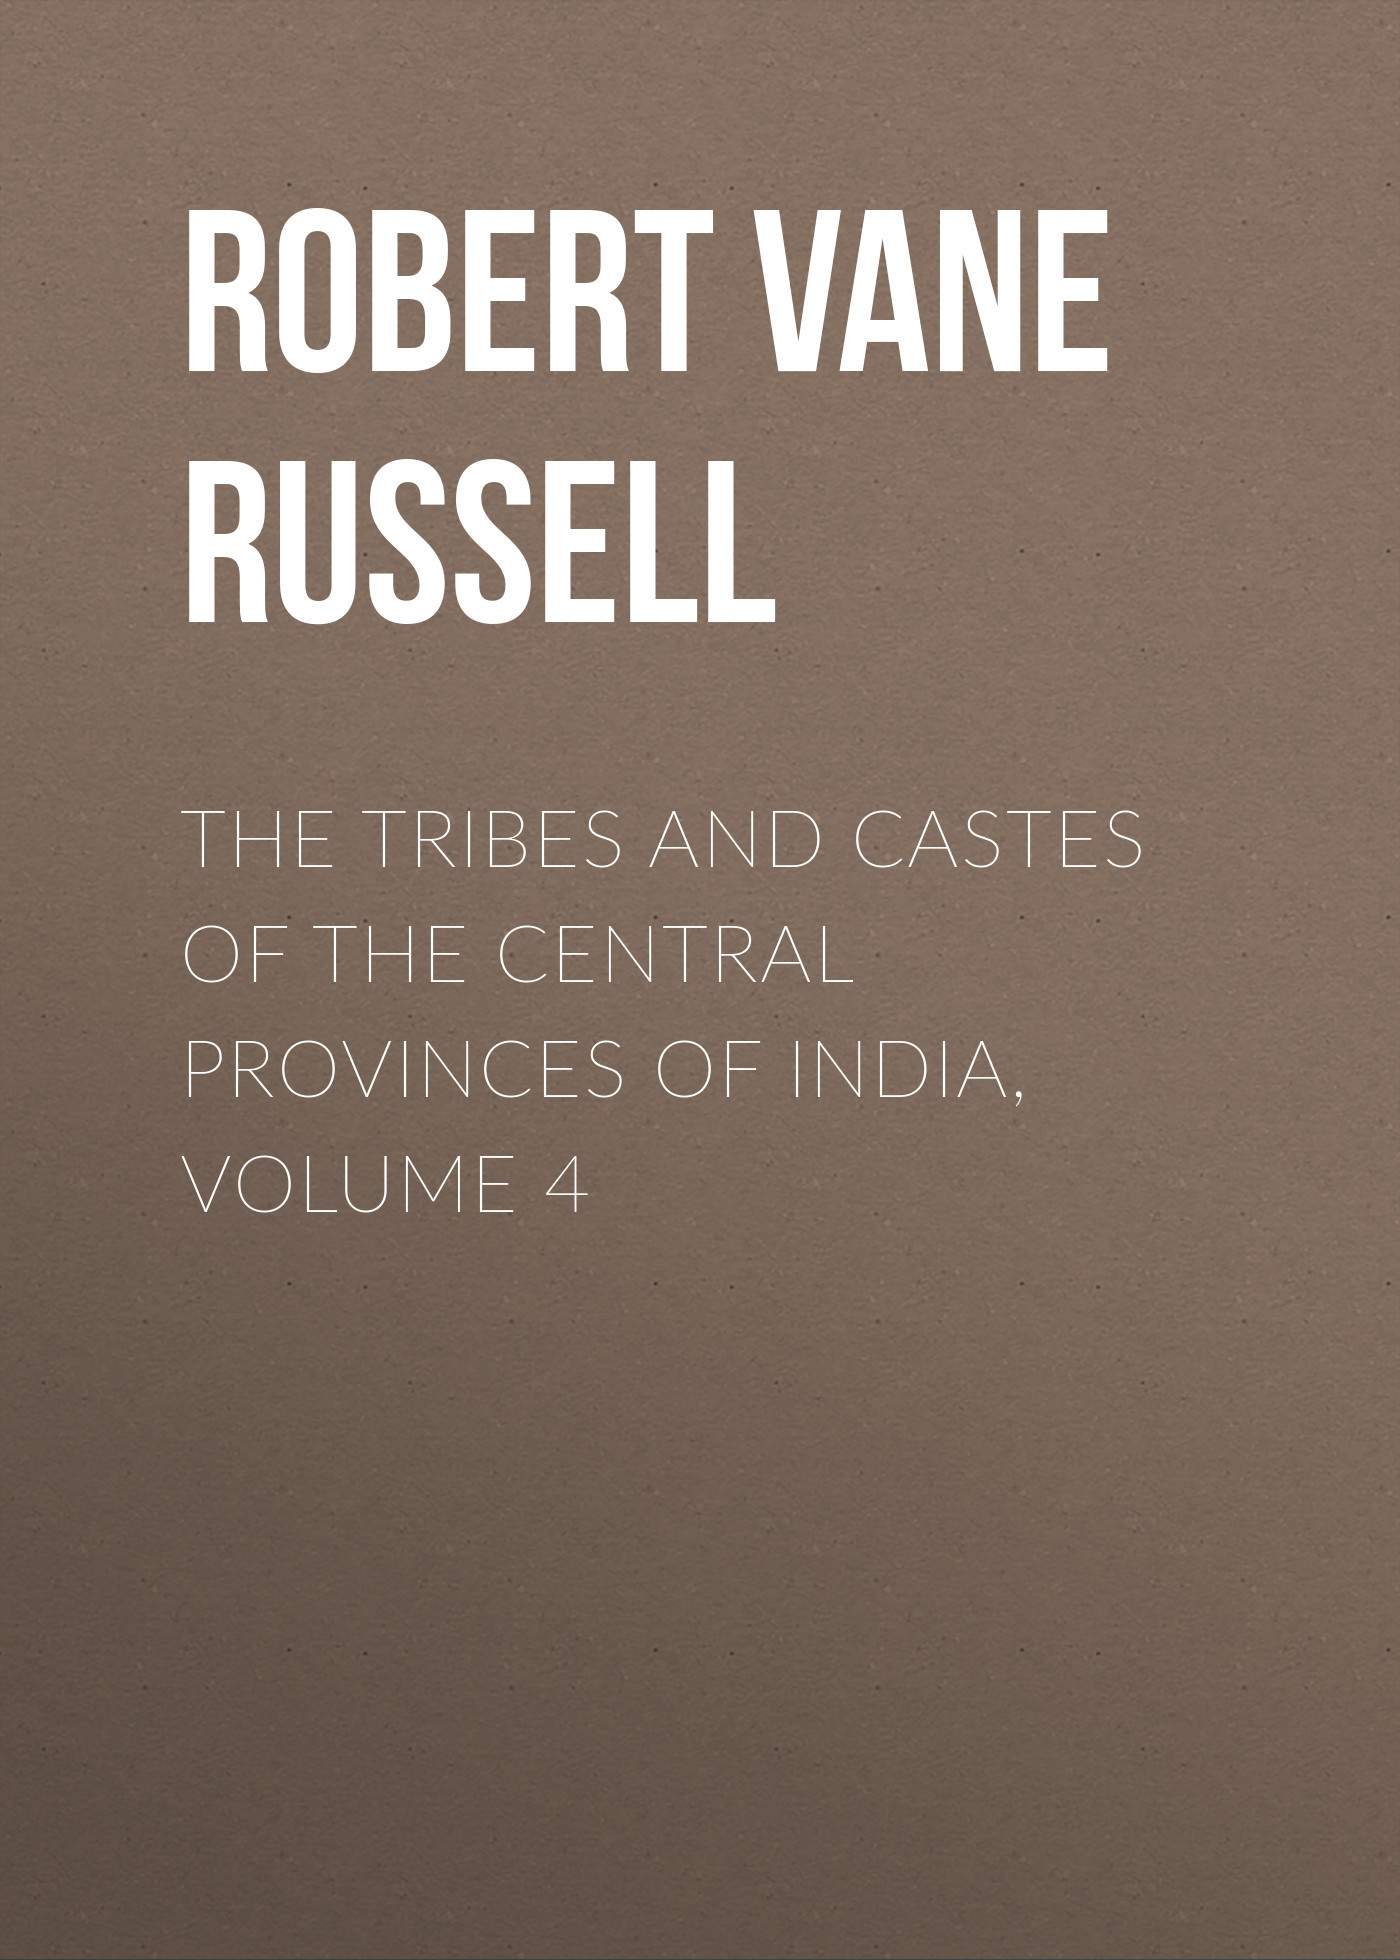 Robert Vane Russell The Tribes and Castes of the Central Provinces of India, Volume 4 накладной светильник arte lamp venice a2101pl 4wh page 3